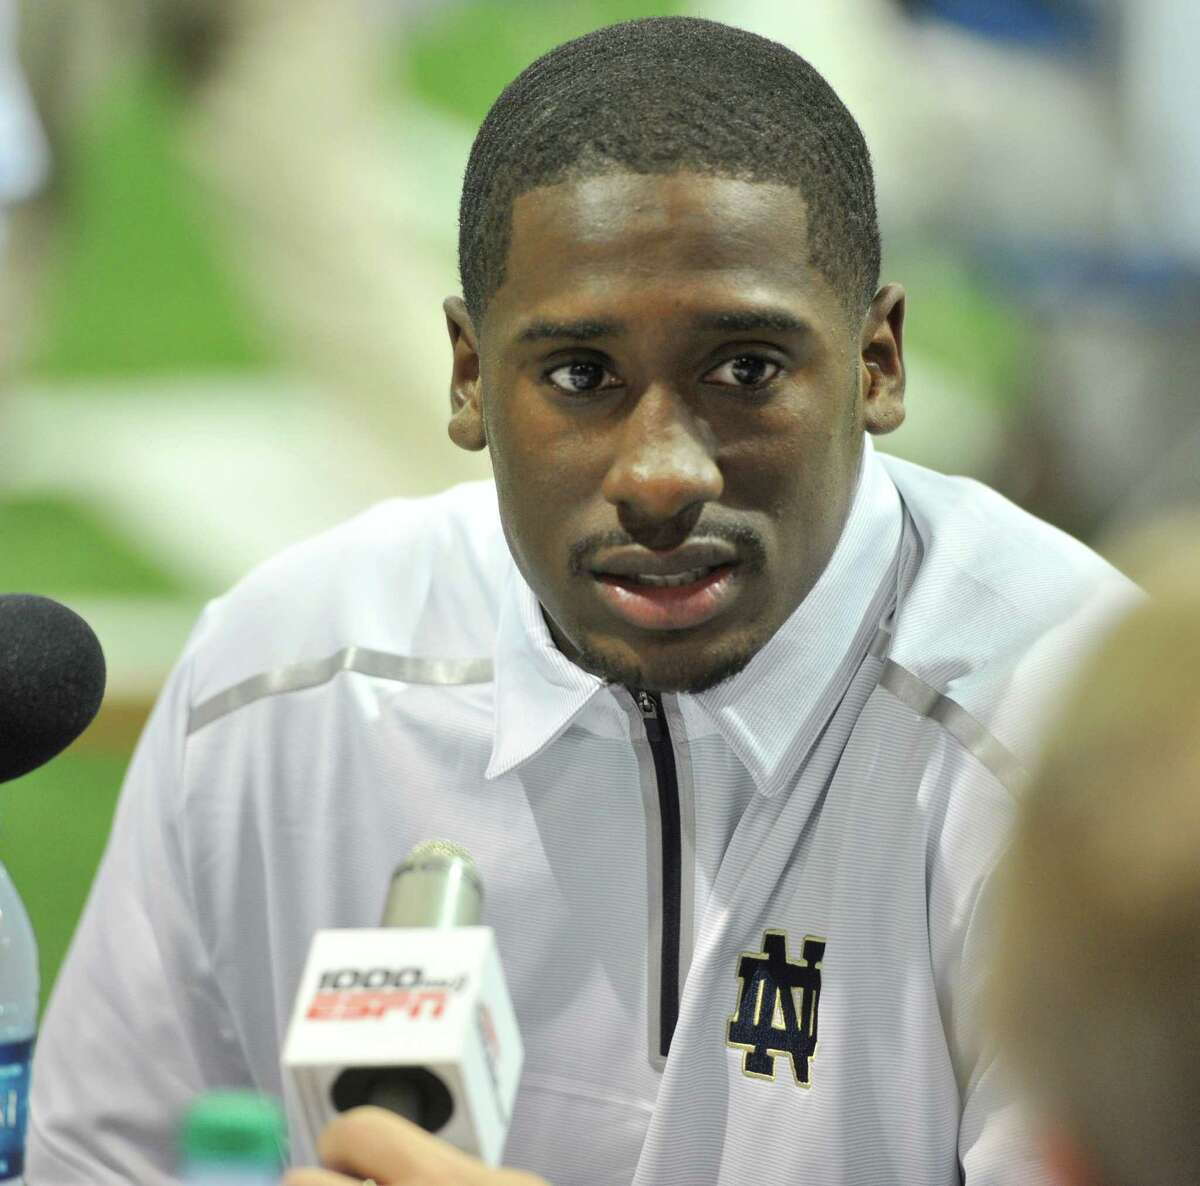 FILE - In this Aug. 19, 2014, file photo, Notre Dame quarterback Everett Golson answers a question during media day for the NCAA college football team in South Bend, Ind. Golson has announced he is leaving Notre Dame and will use his final season of eligibility elsewhere after graduating later this month. Golson issued a statement to Fox Sports on Thursday, May 7, 2015, saying he has decided to transfer. (AP Photo/Joe Raymond, File)